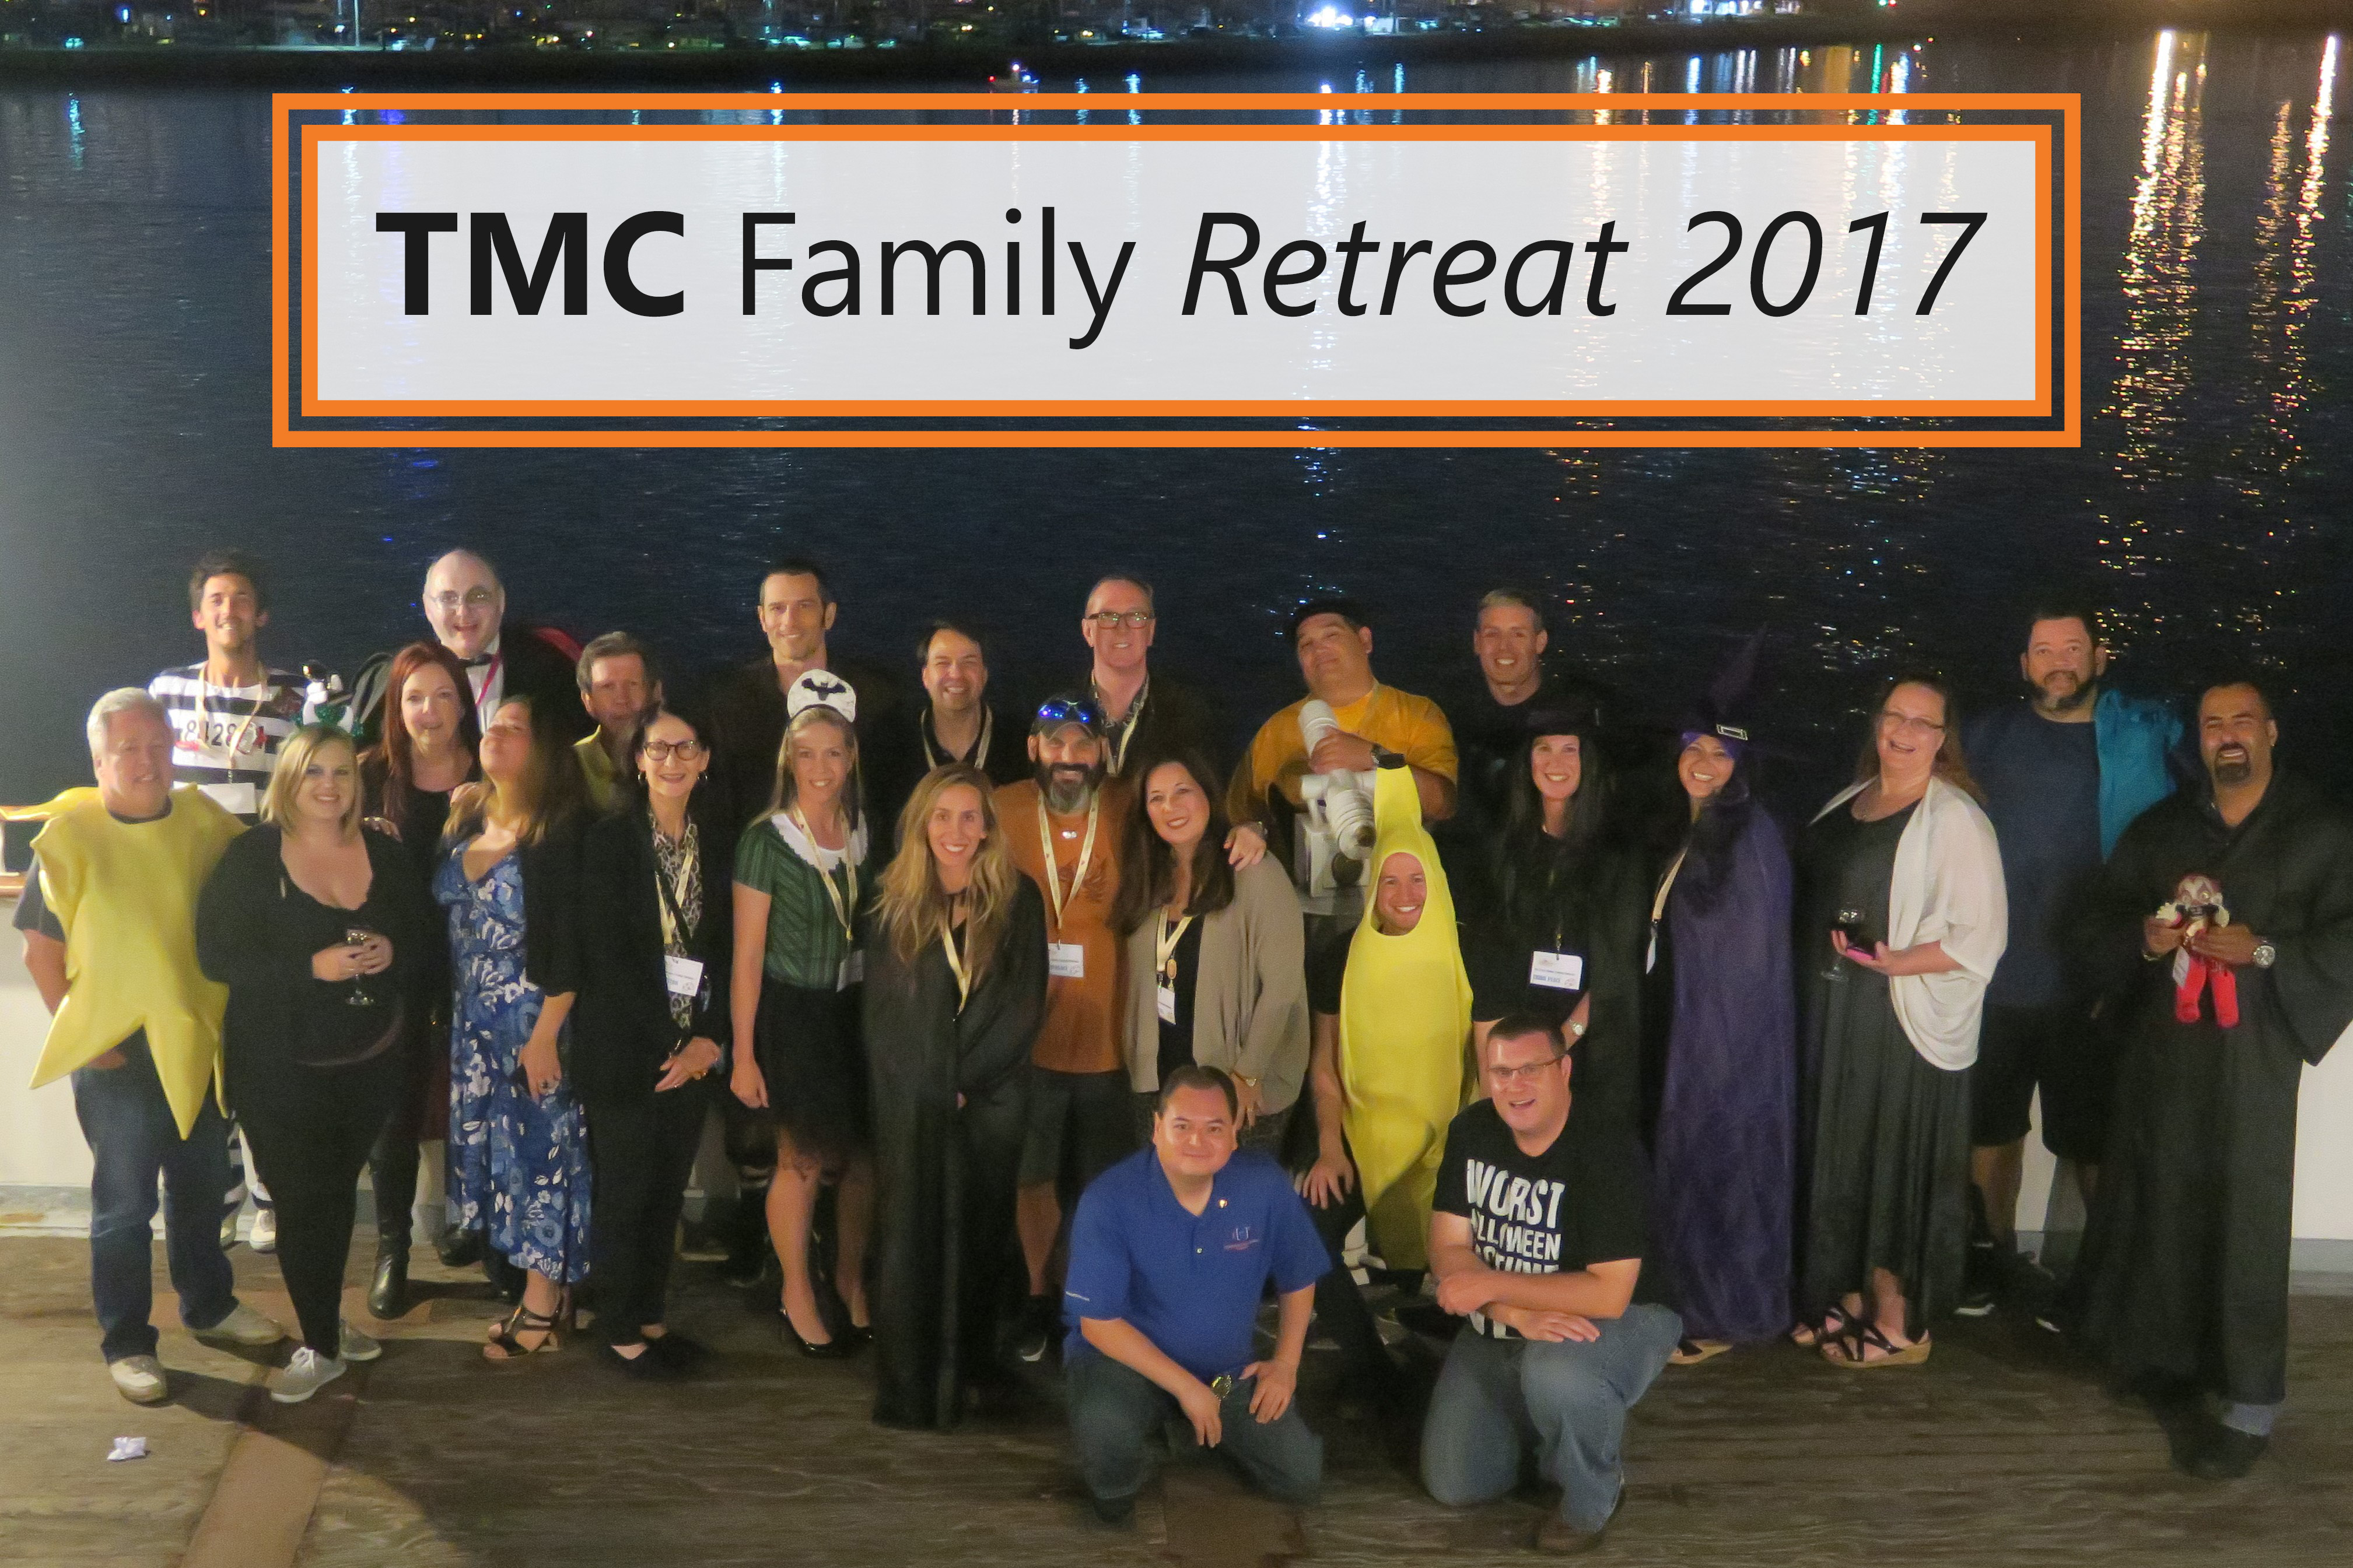 TMC-family-retreat-2017-group-picture.jpg>                                 </a>                                 <div class=